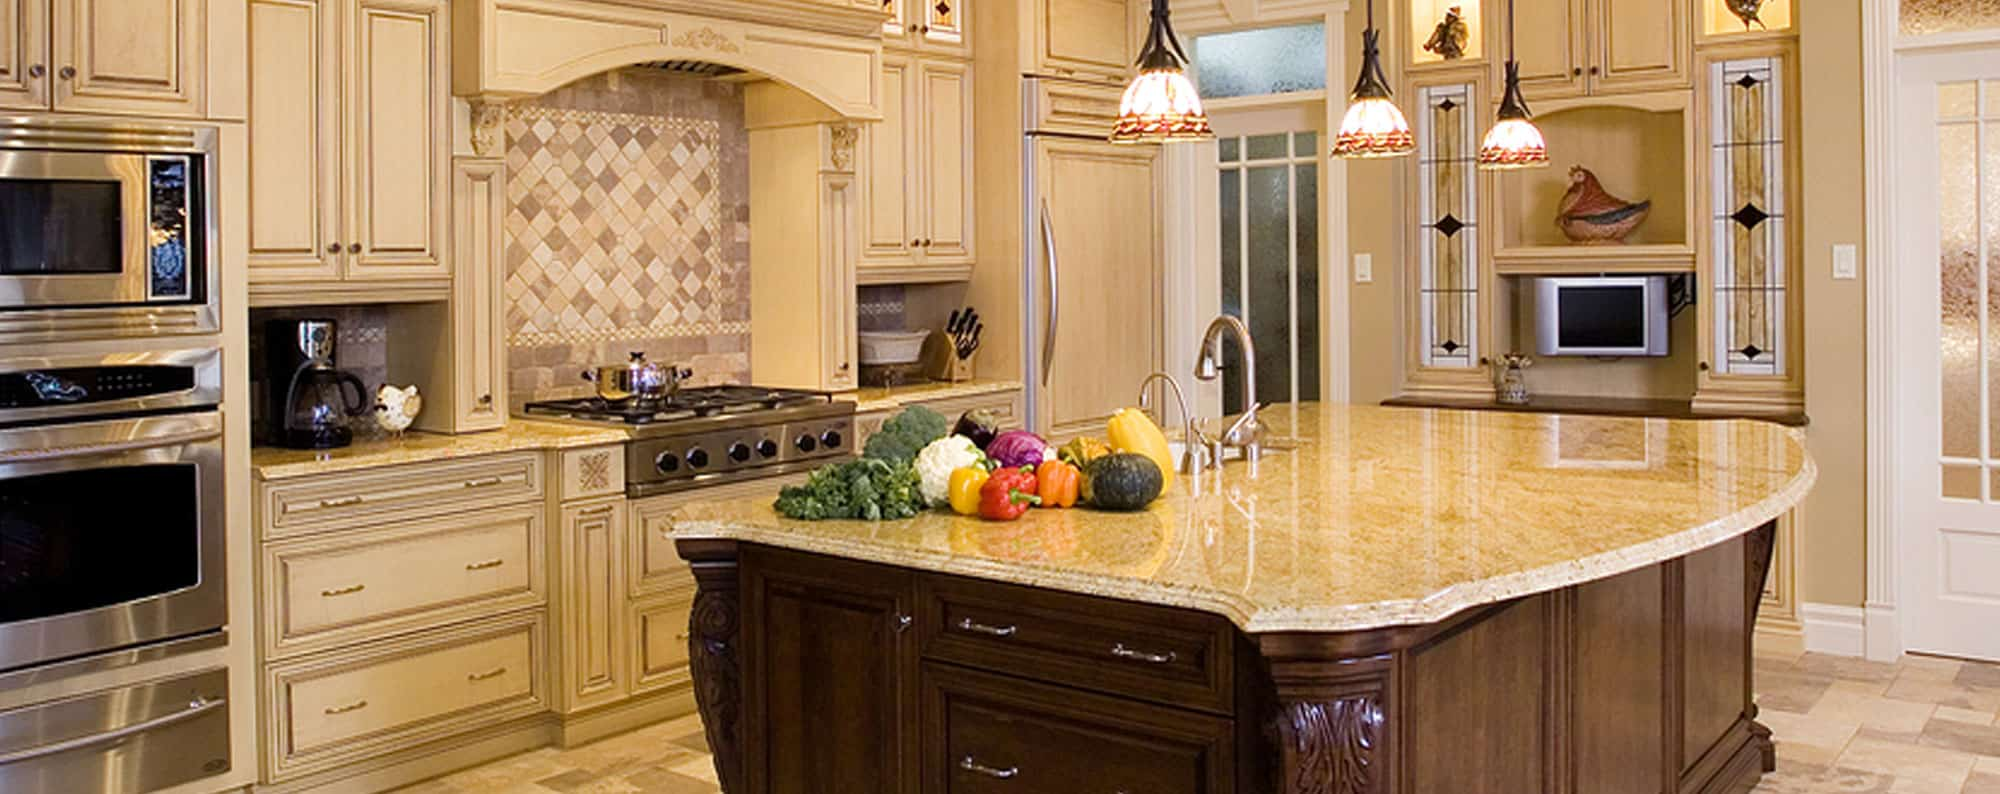 baltimore's #1 home remodeling contractor - kitchens, baths, basements